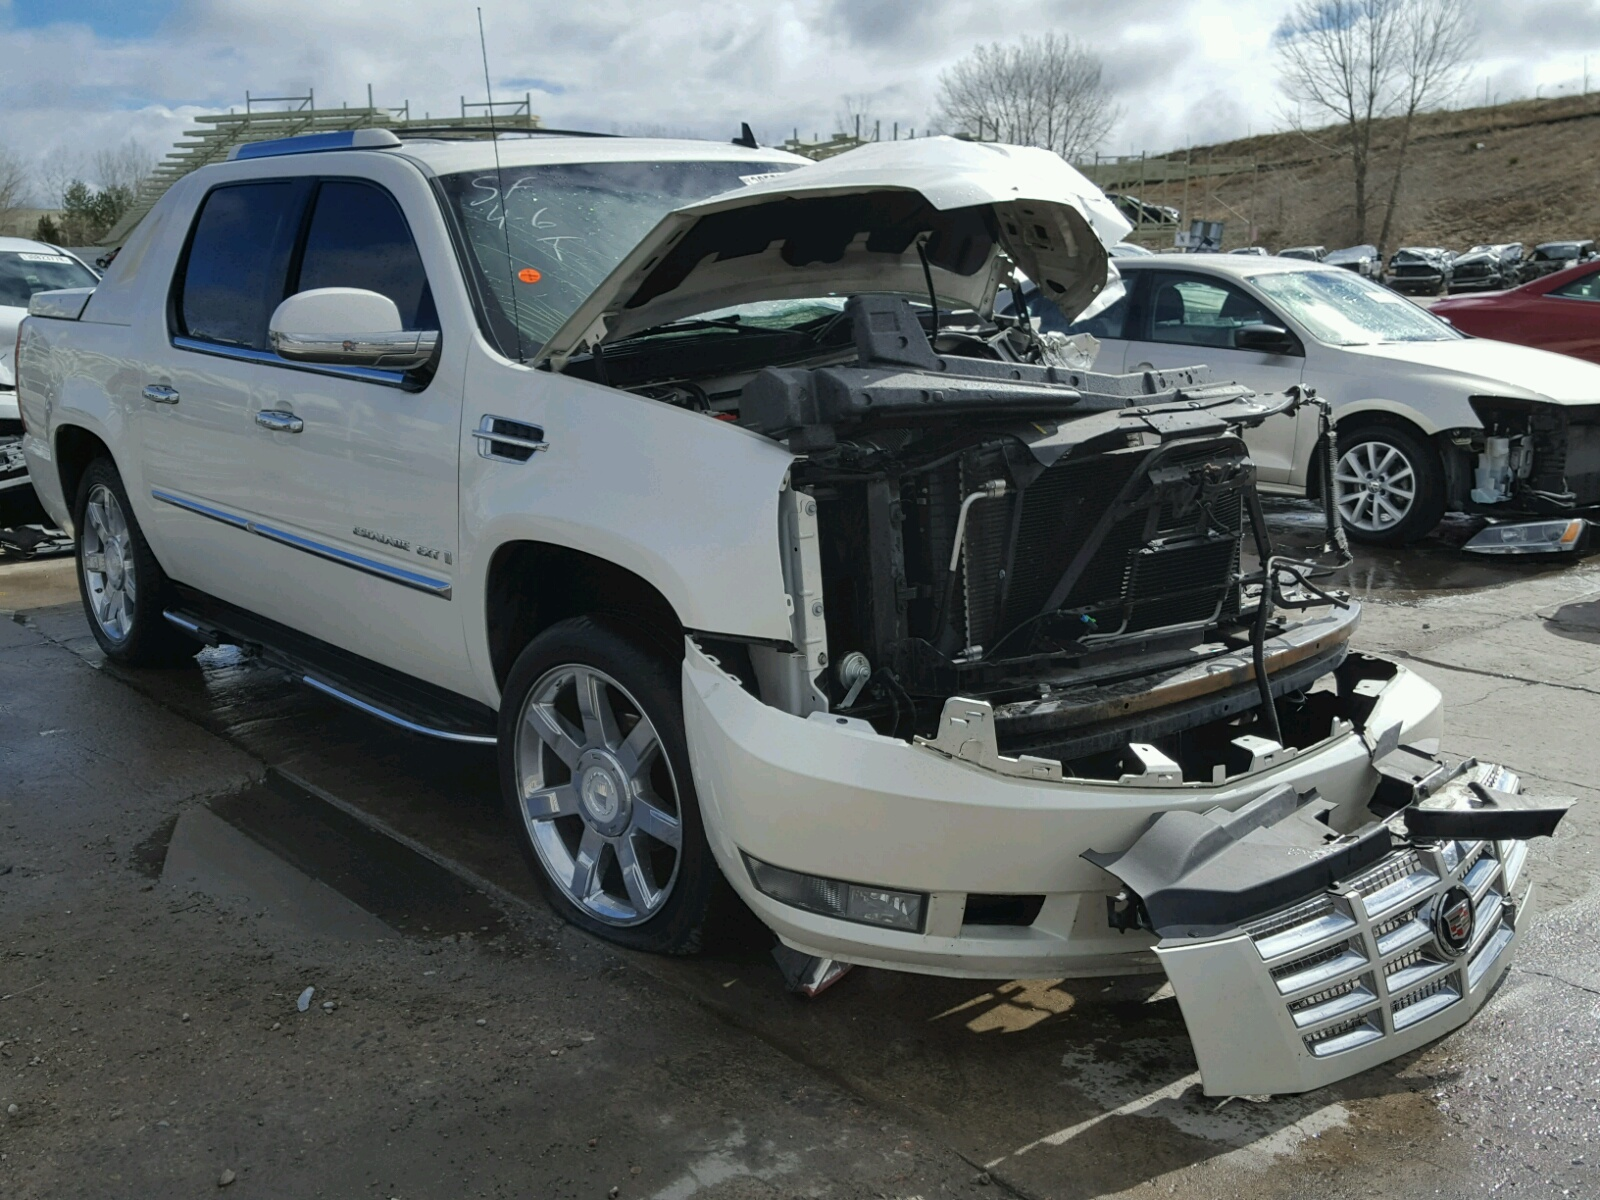 Salvage Title Cars For Sale Houston